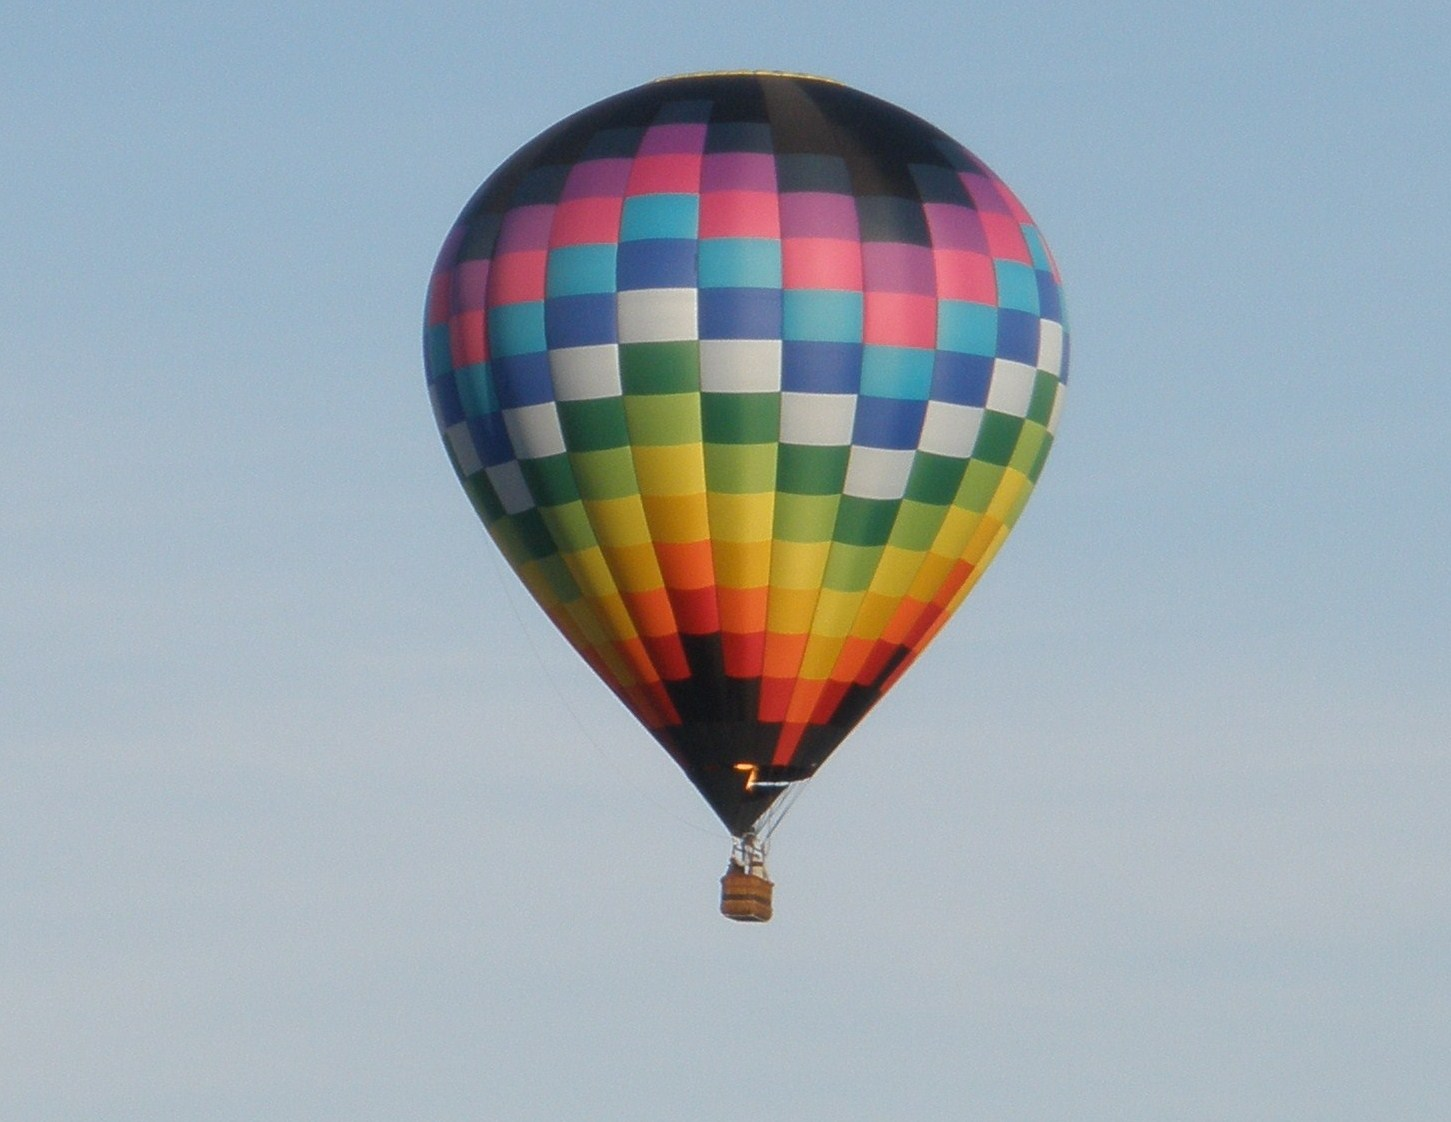 colorful hot air blloon wallpapers - DriverLayer Search Engine